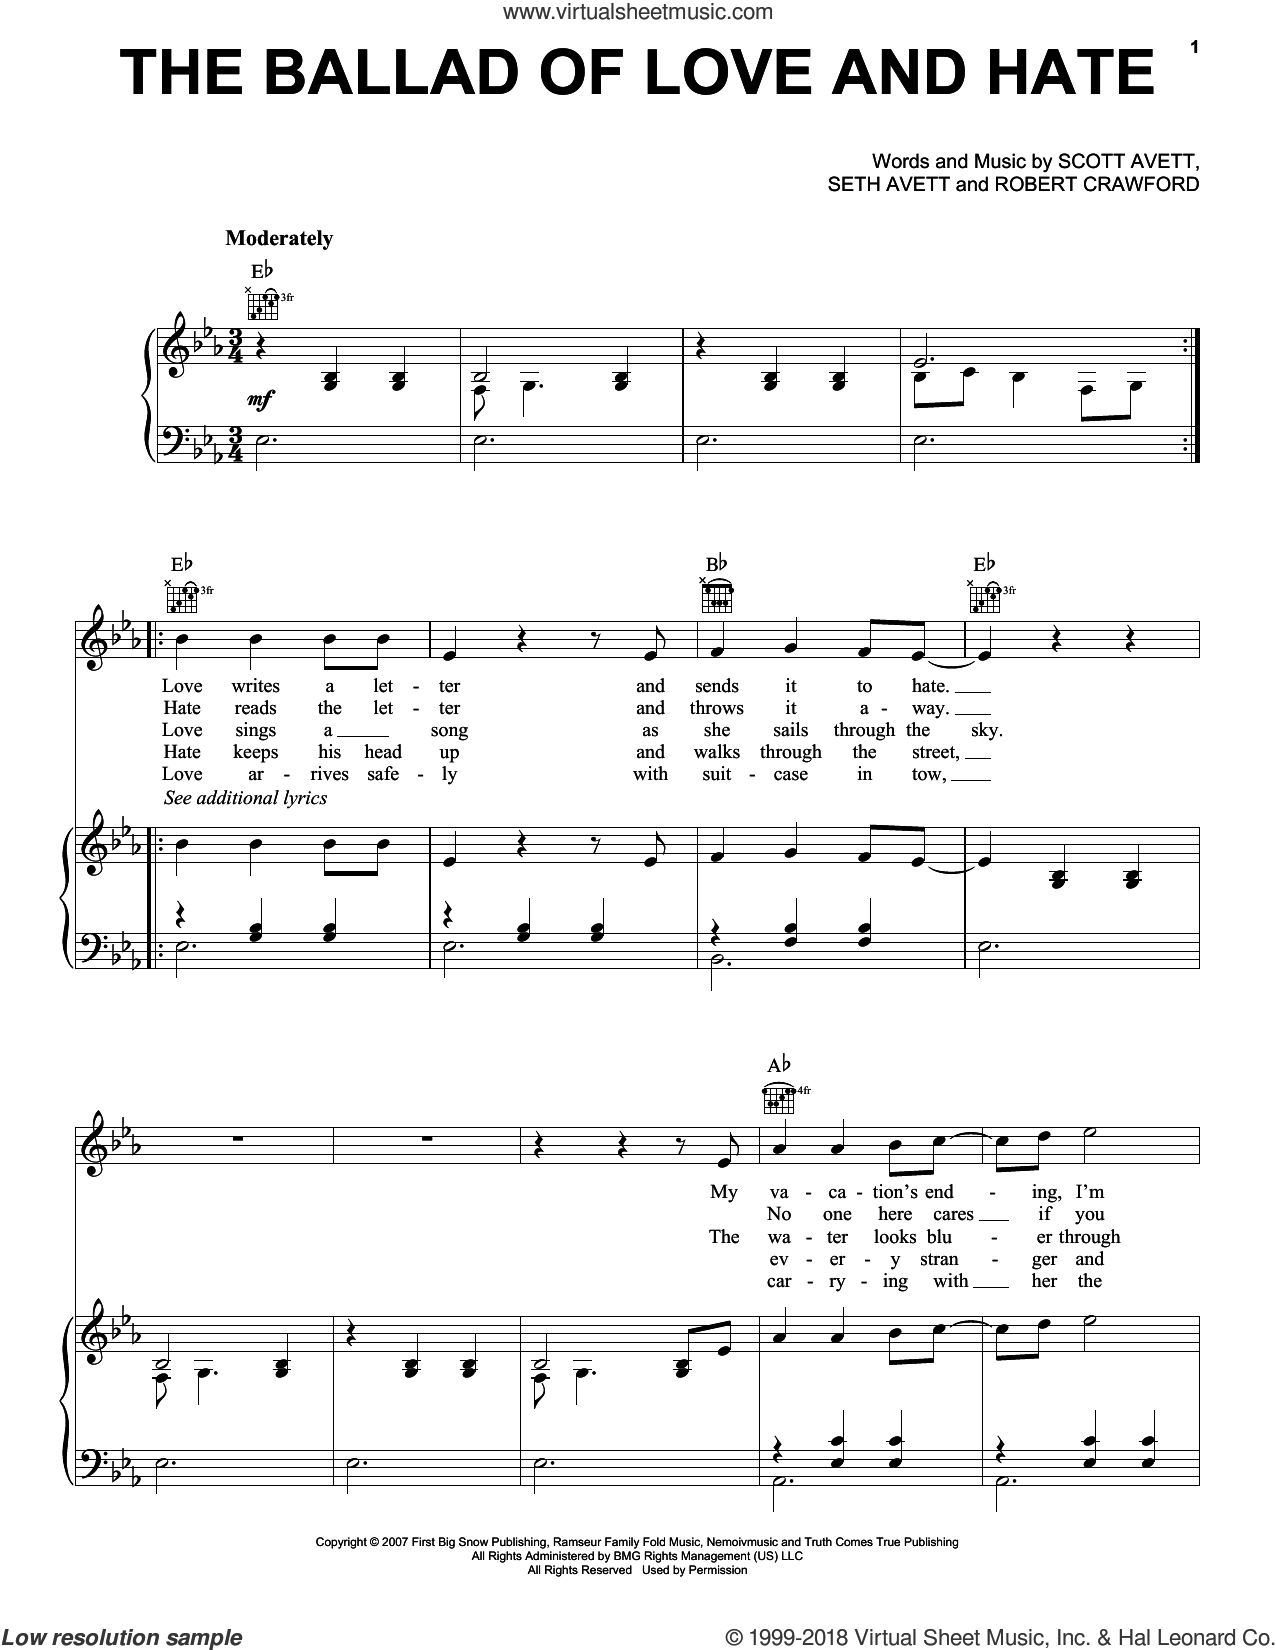 The Ballad Of Love And Hate sheet music for voice, piano or guitar by The Avett Brothers, Avett Brothers, Robert Crawford, Scott Avett and Seth Avett, intermediate skill level